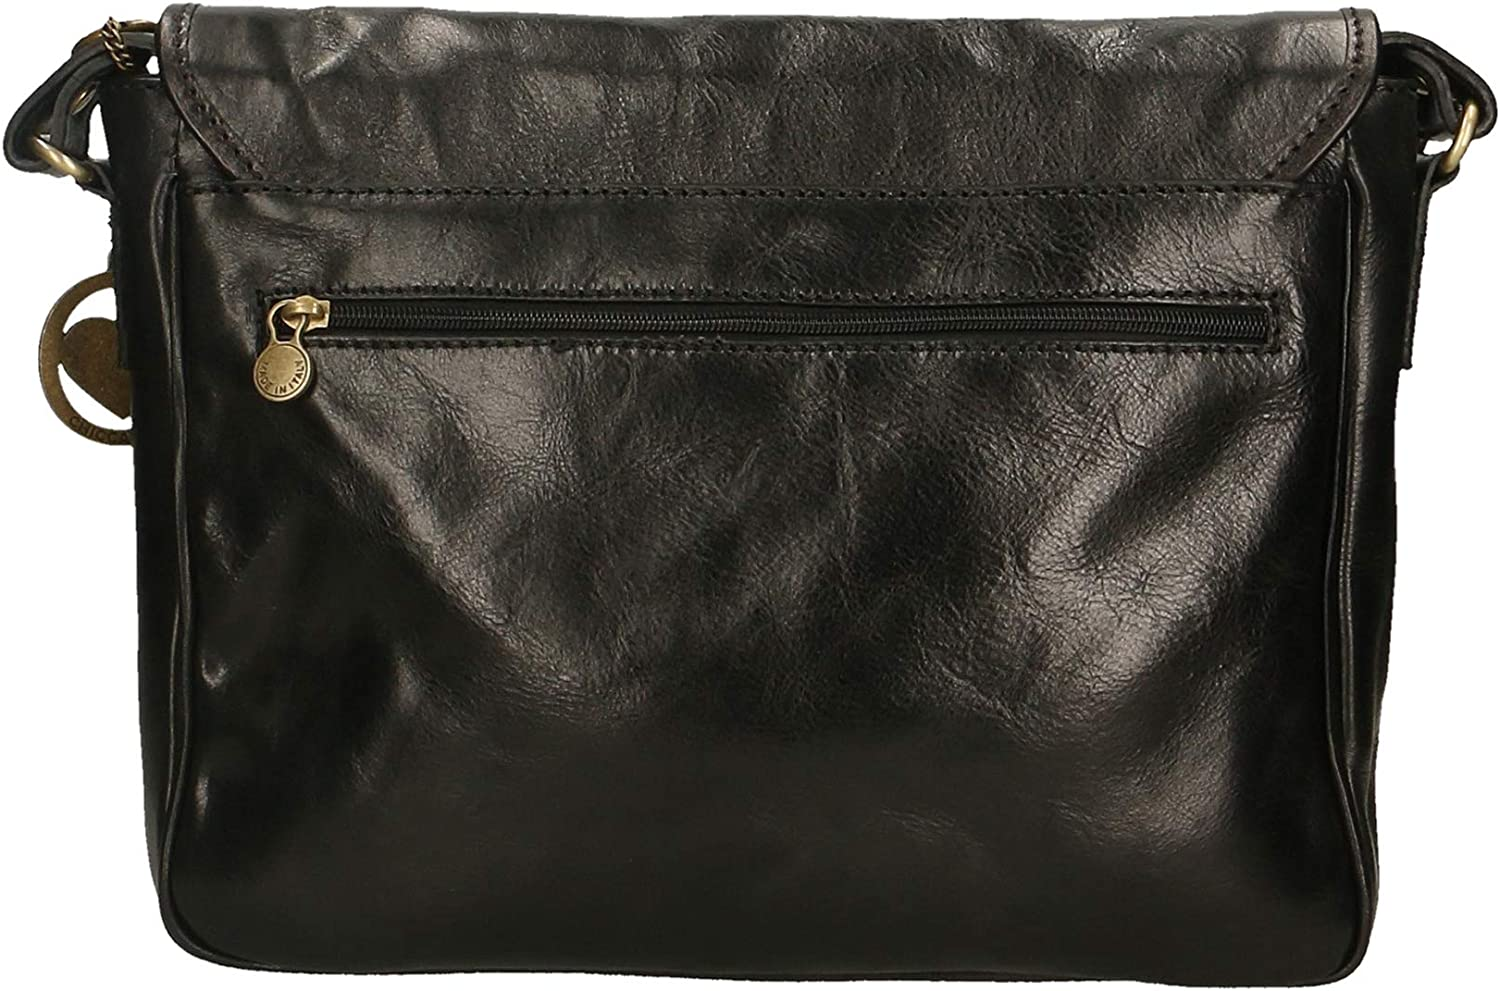 Chicca Borse Leather in Genuine Leather Made in Italy 32x28x8 cm Black